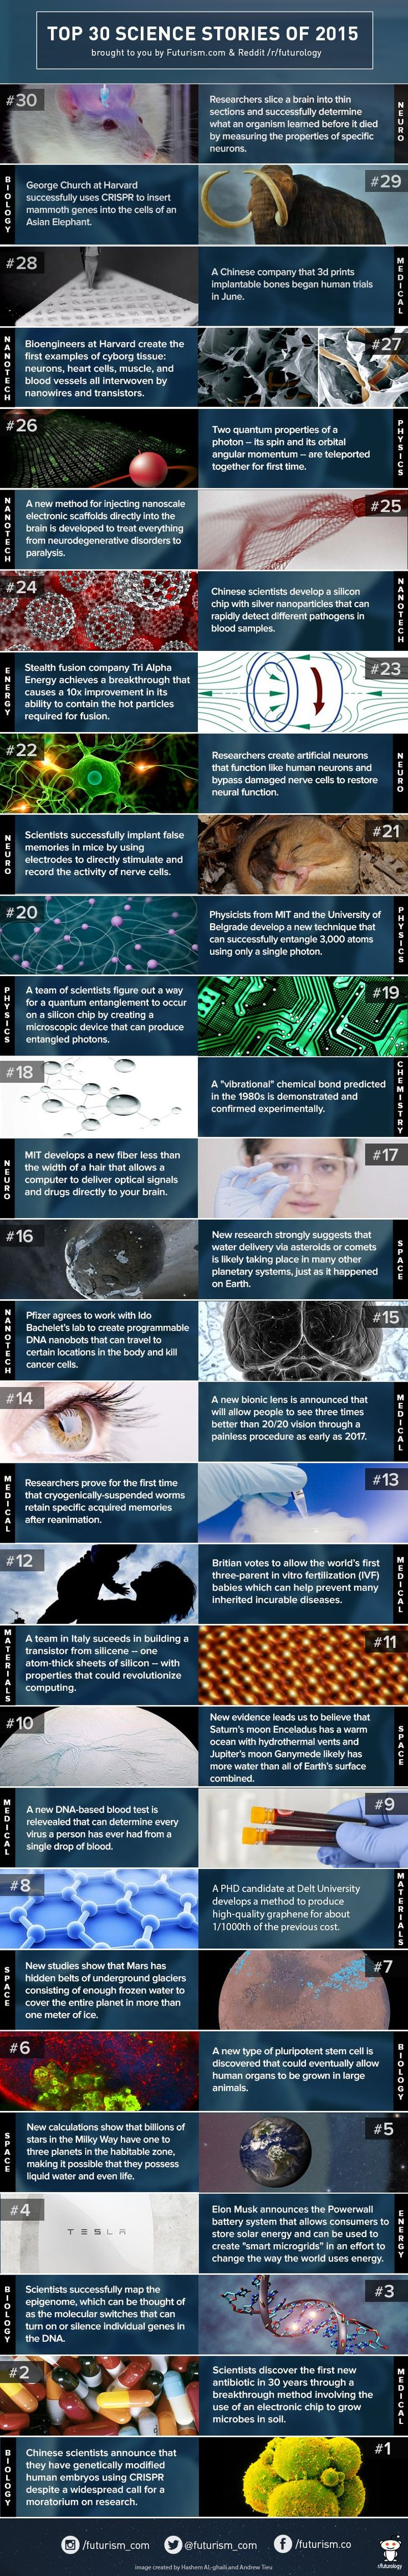 2015 has already been a huge year for science — here are 30 reasons why